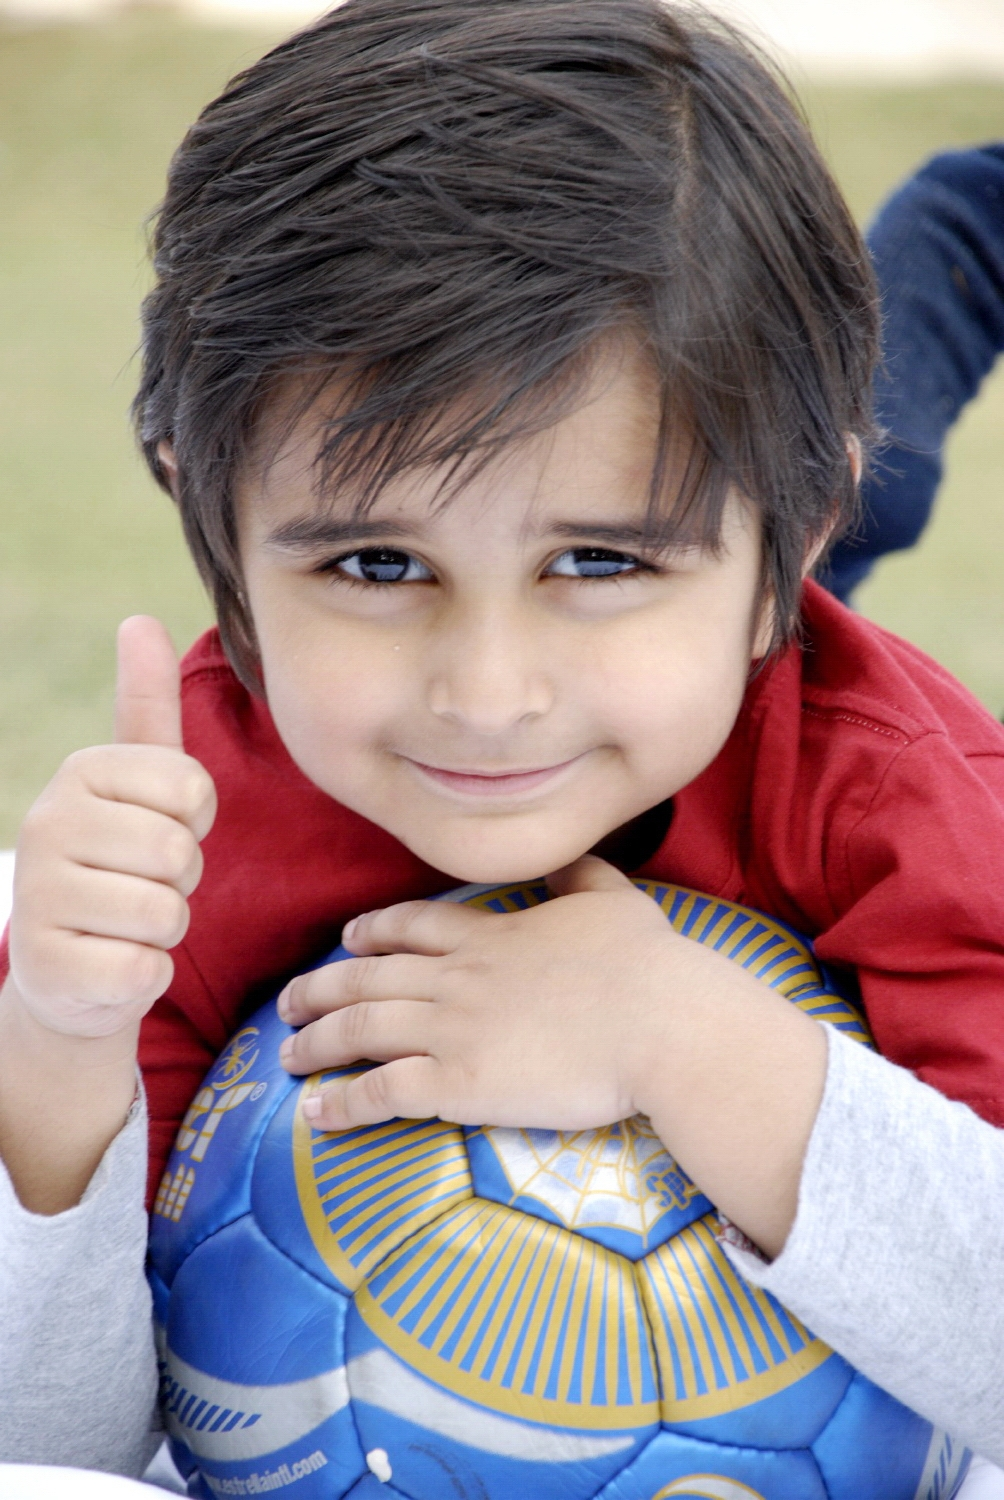 Cute Baby With Football, Adolescence, Person, Joy, Kid, HQ Photo